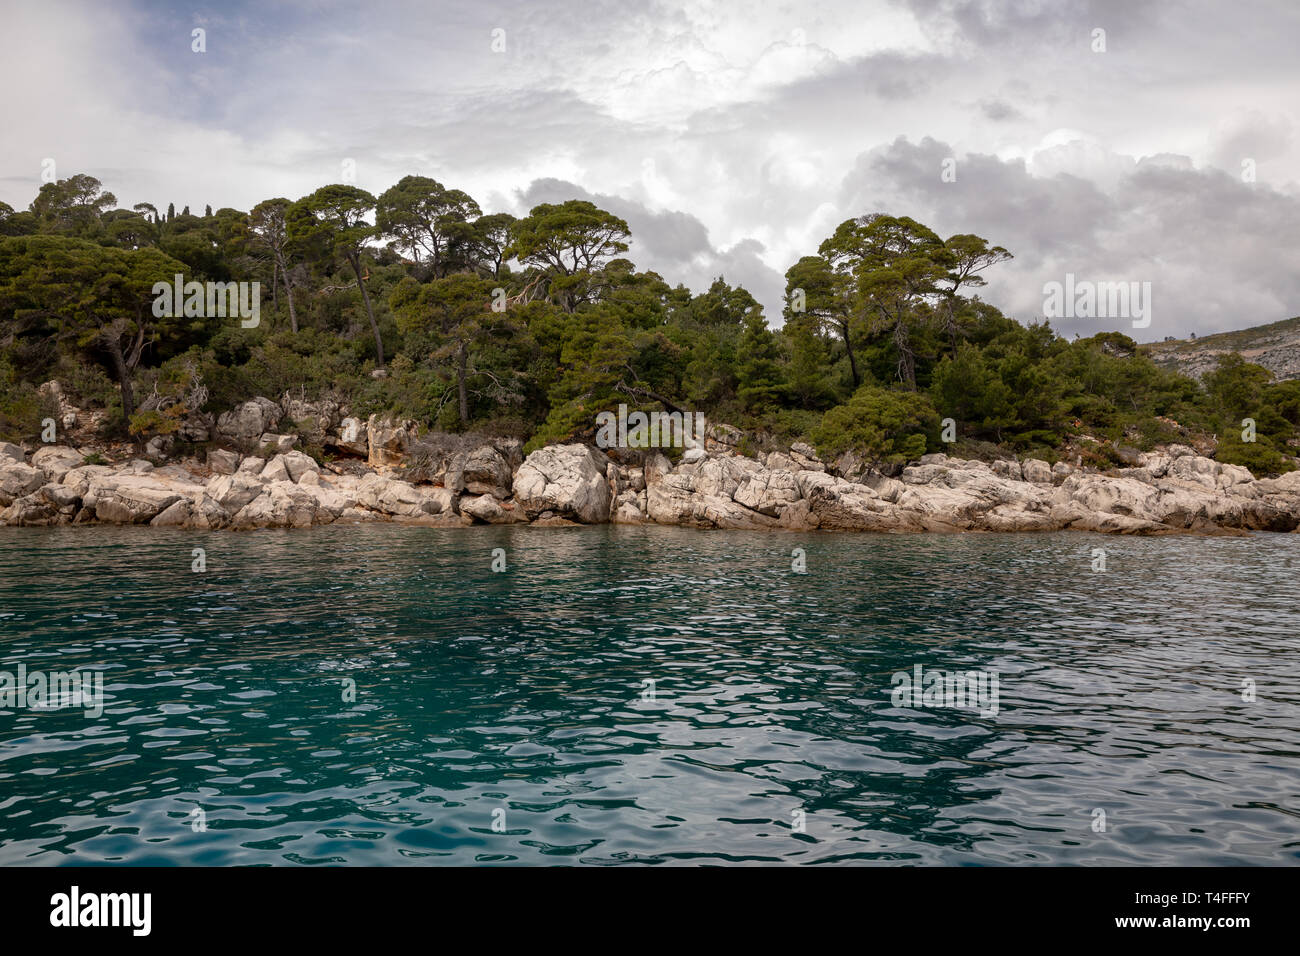 Trees and nature at Lokrum Island Coast, Dubrovnik, in Croatia - Stock Image